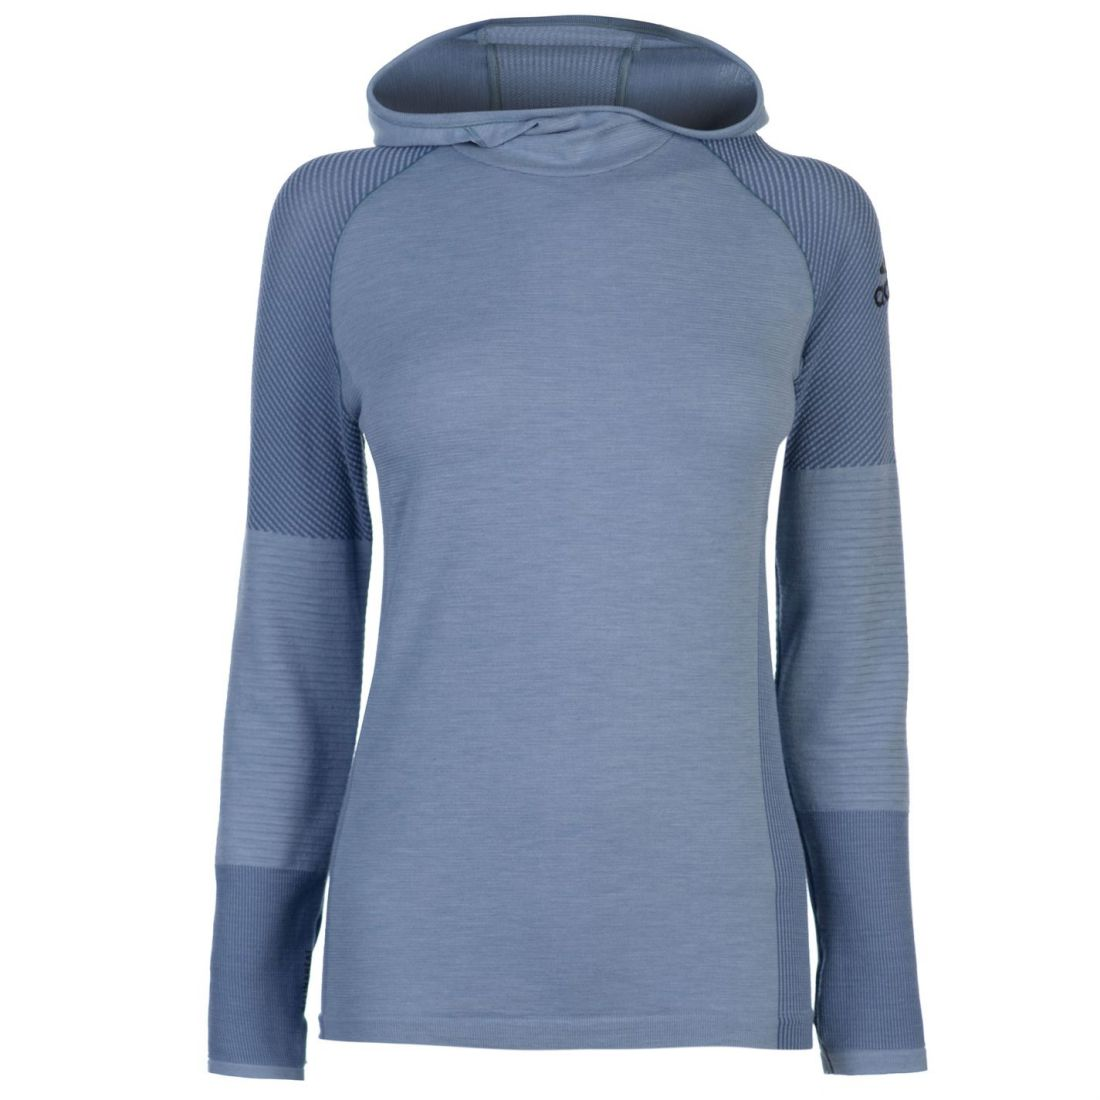 Details about adidas Womens ClimaHeat Long Sleeve Hooded Top Performance Shirt Lightweight